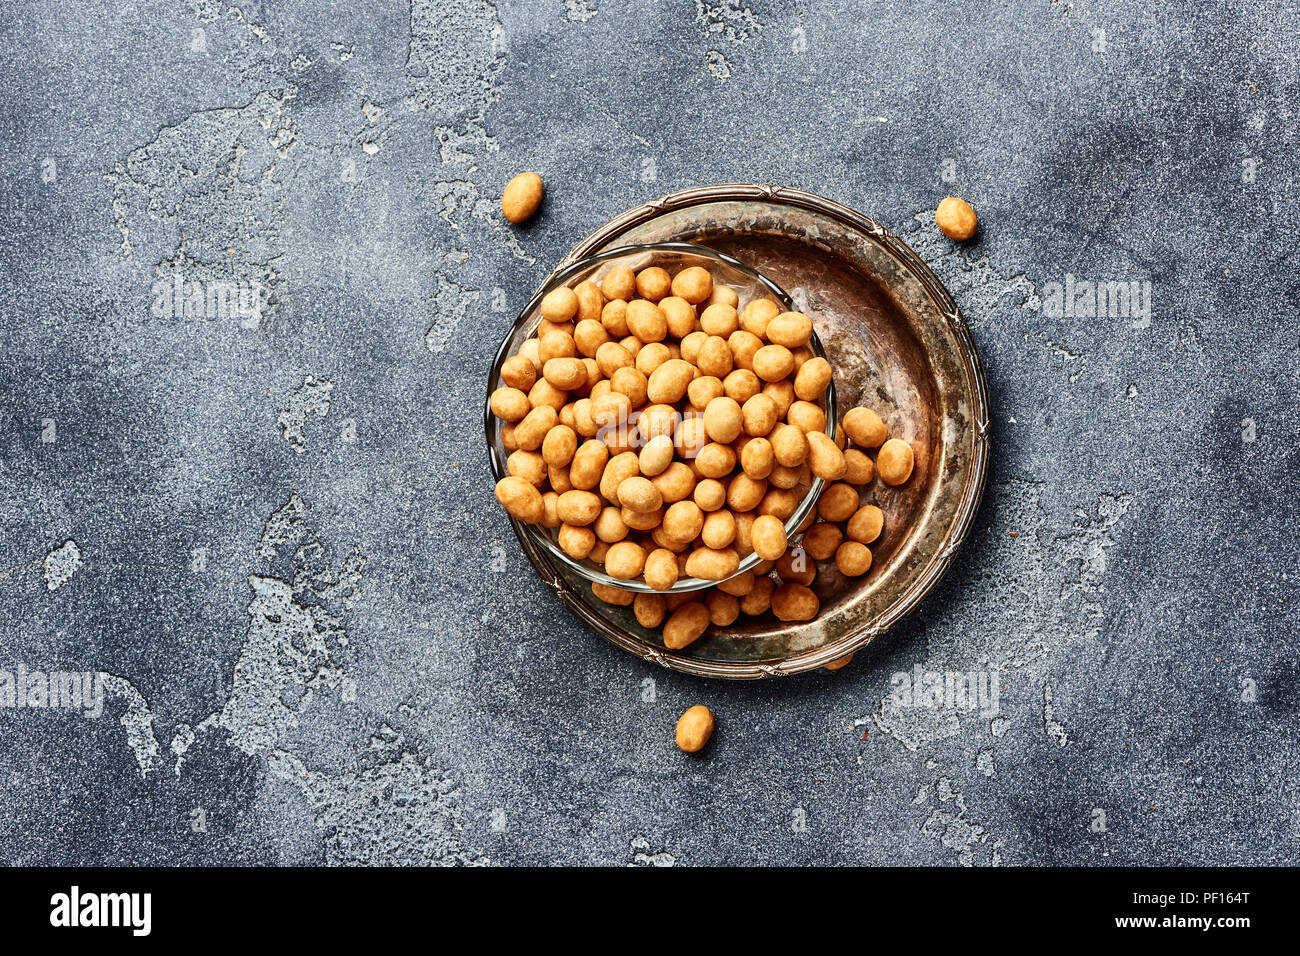 Spicy coated fried peanuts on gray background. Top view of snacks and nuts. - Stock Image